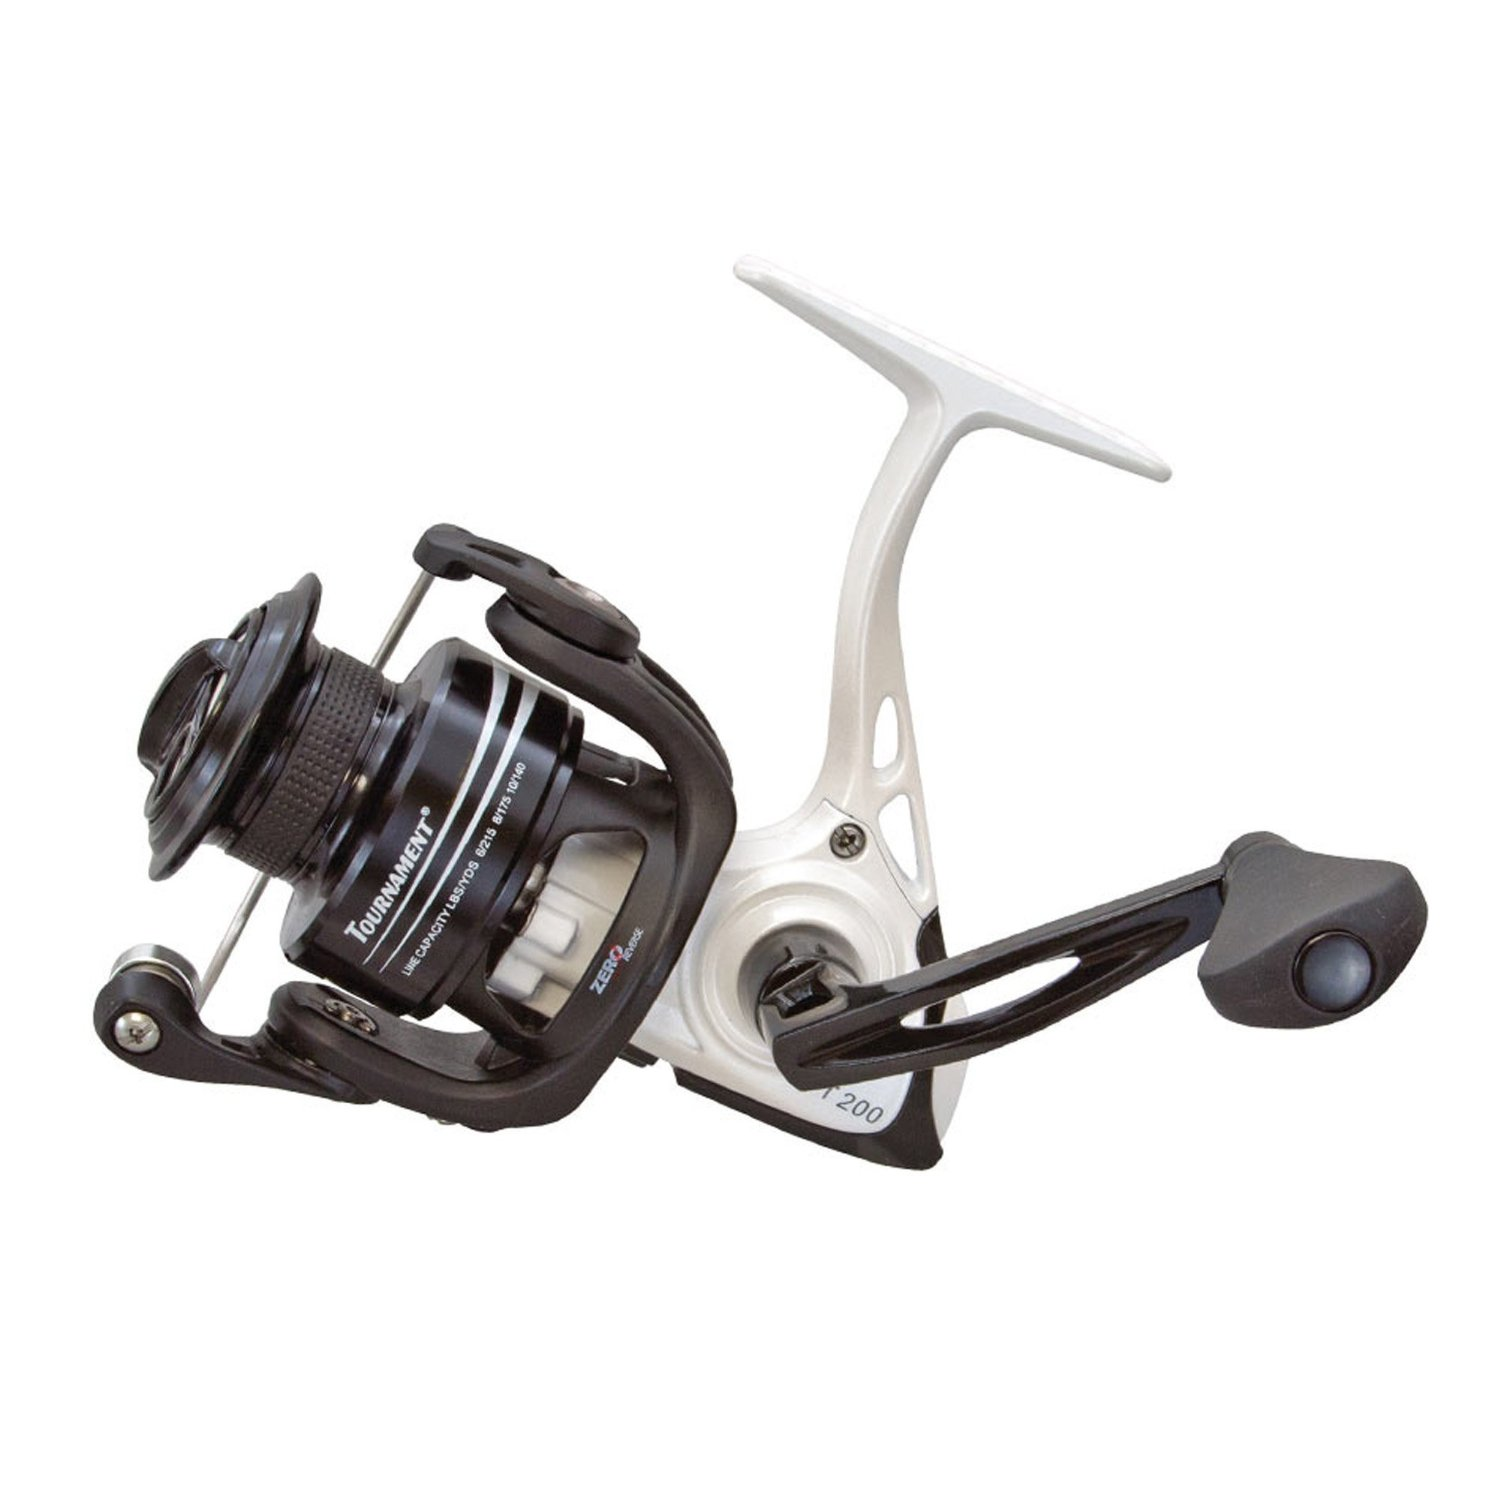 Lew's Fishing Lews Fishing, Tournament Metal Speed Spinning Reel, T200, Boxed